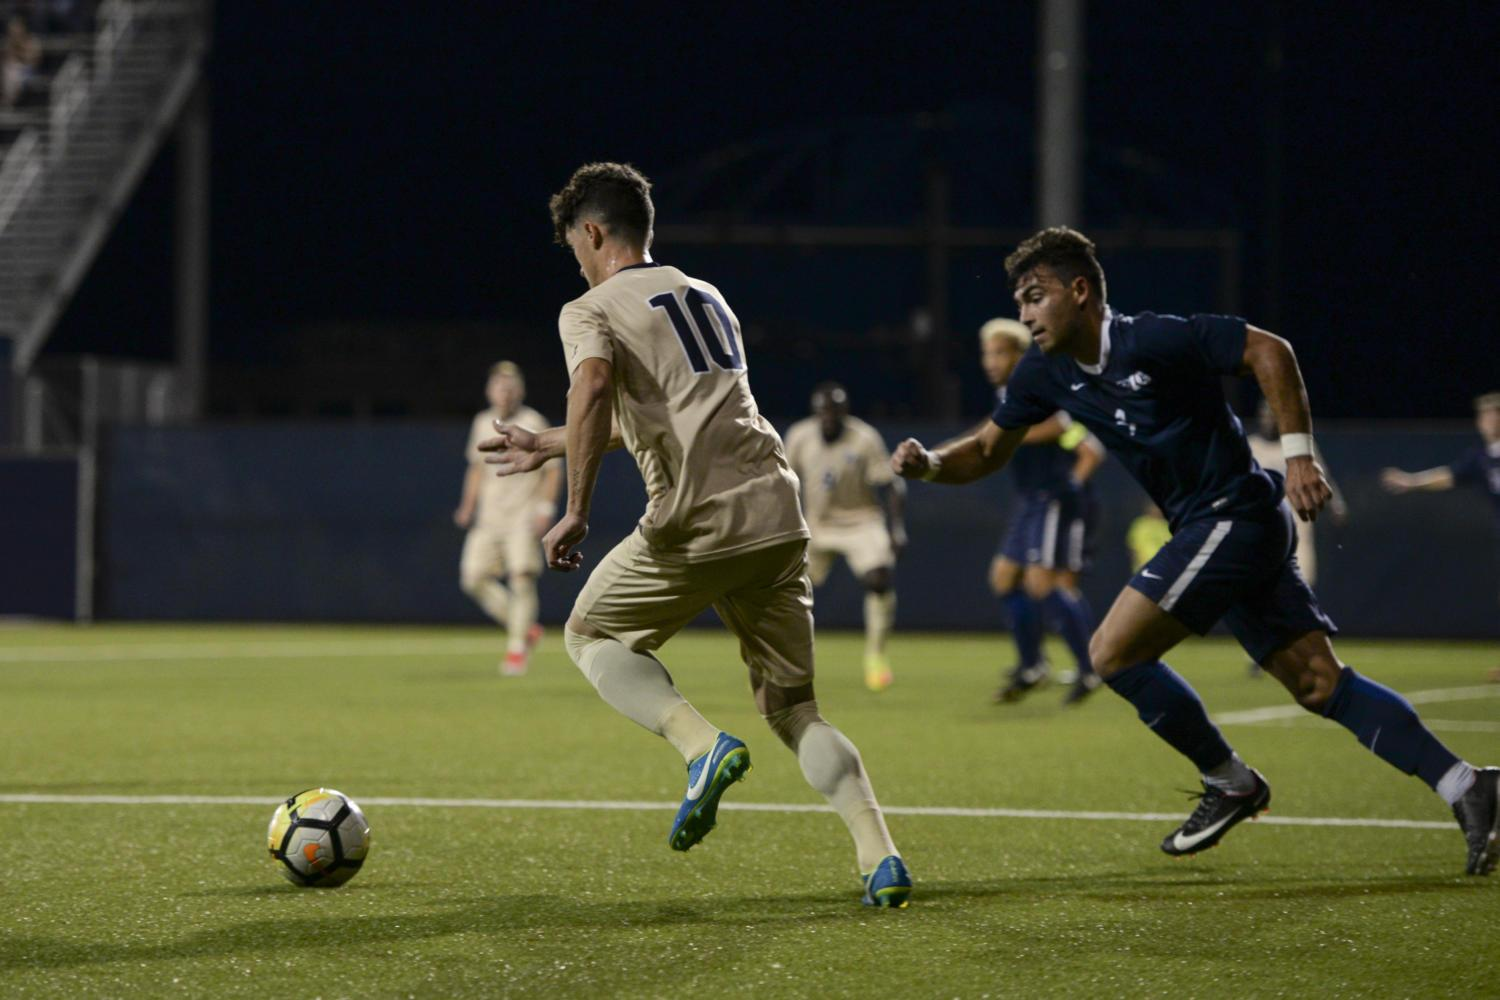 Marcony Pimentel scored a goal in Pitt men's soccer's win over Penn State in overtime Tuesday night. (Photo by Betty Shen | Staff Photographer)